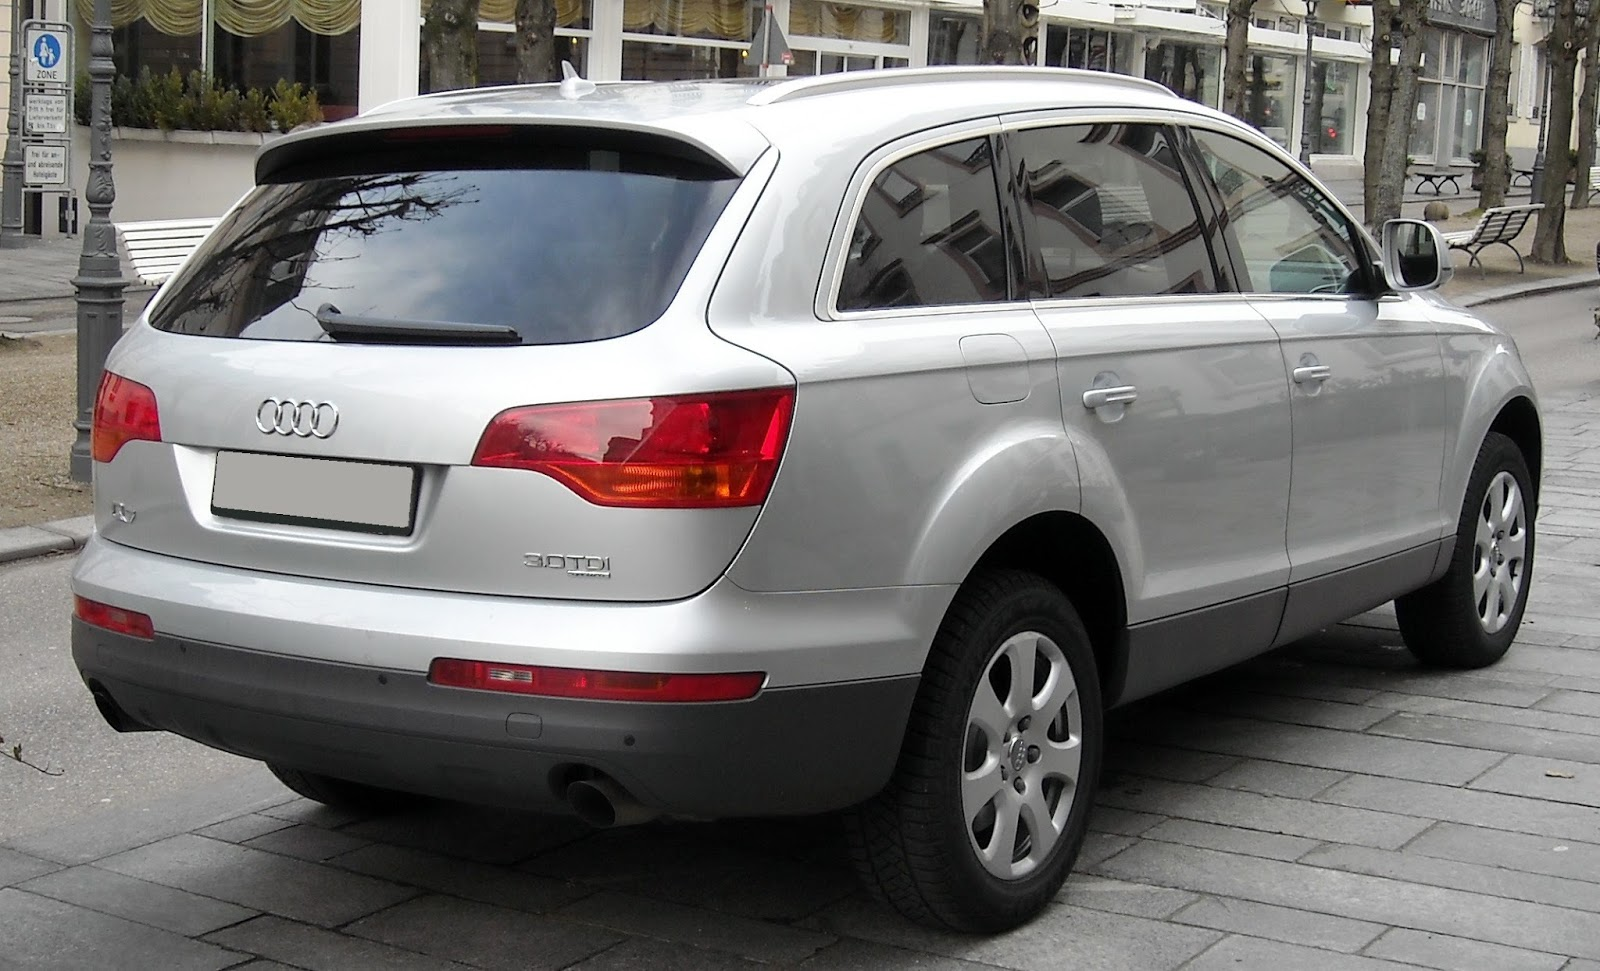 Audi Car Images And Price Audi q7 Tdi Cars Prices